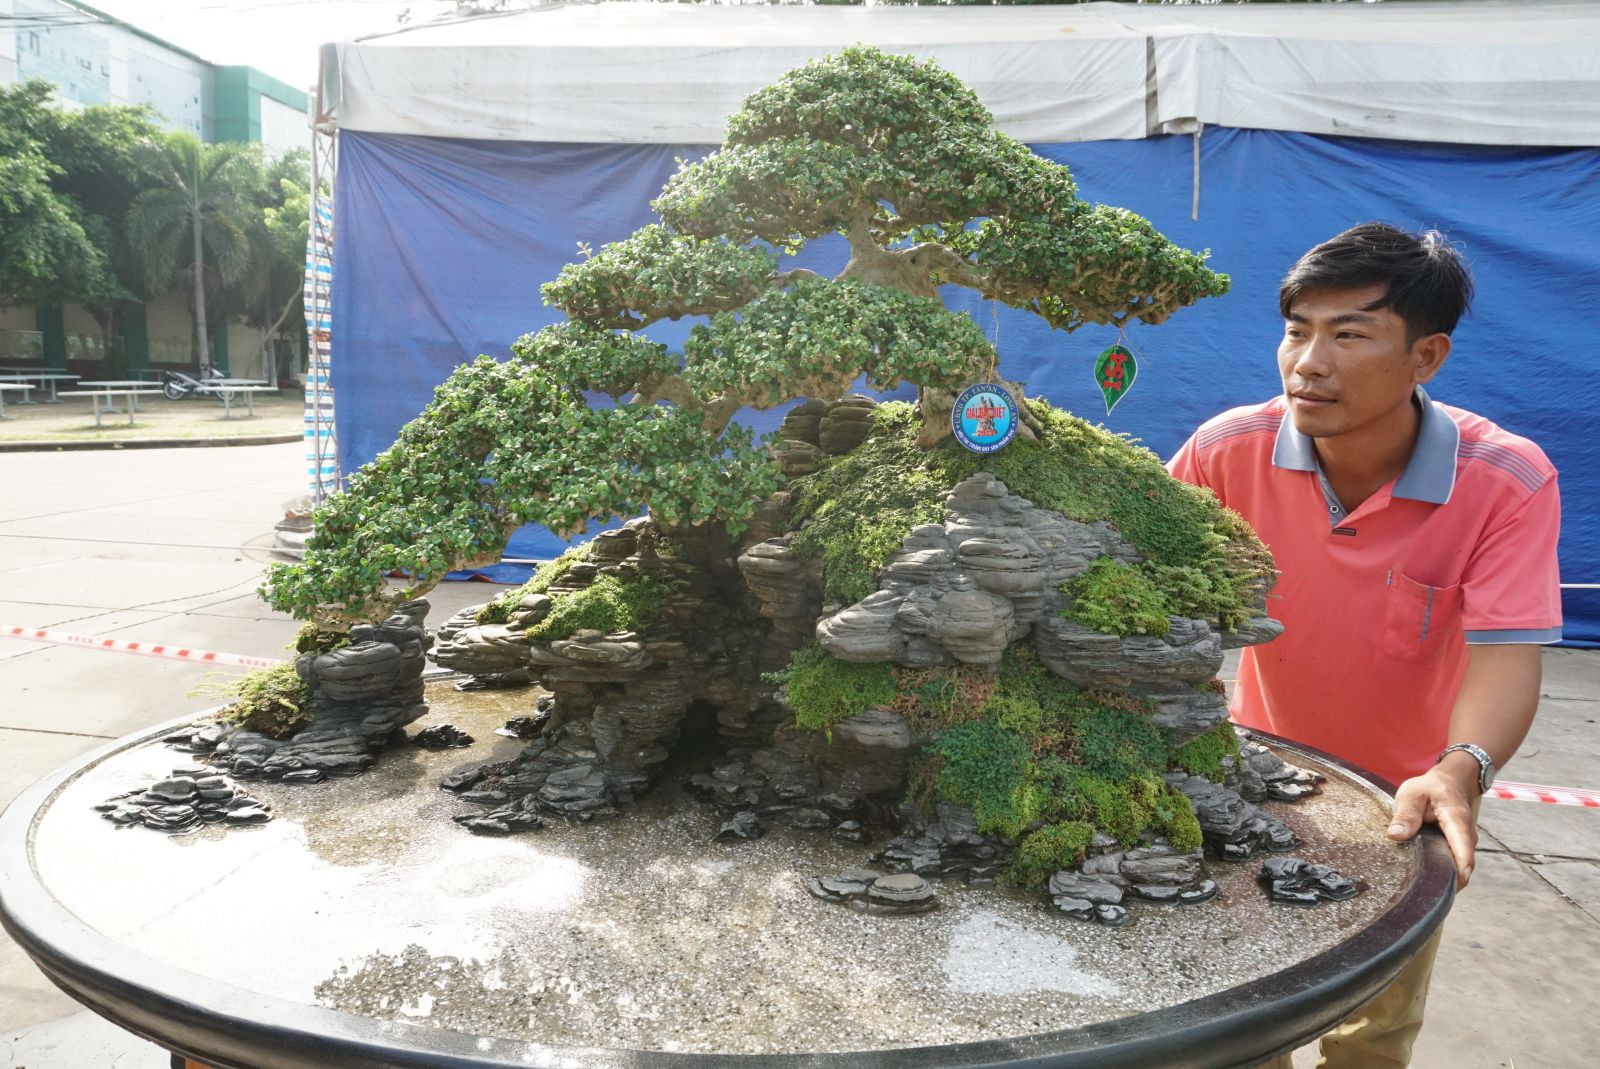 The work of miniature landscape art wins a special prize